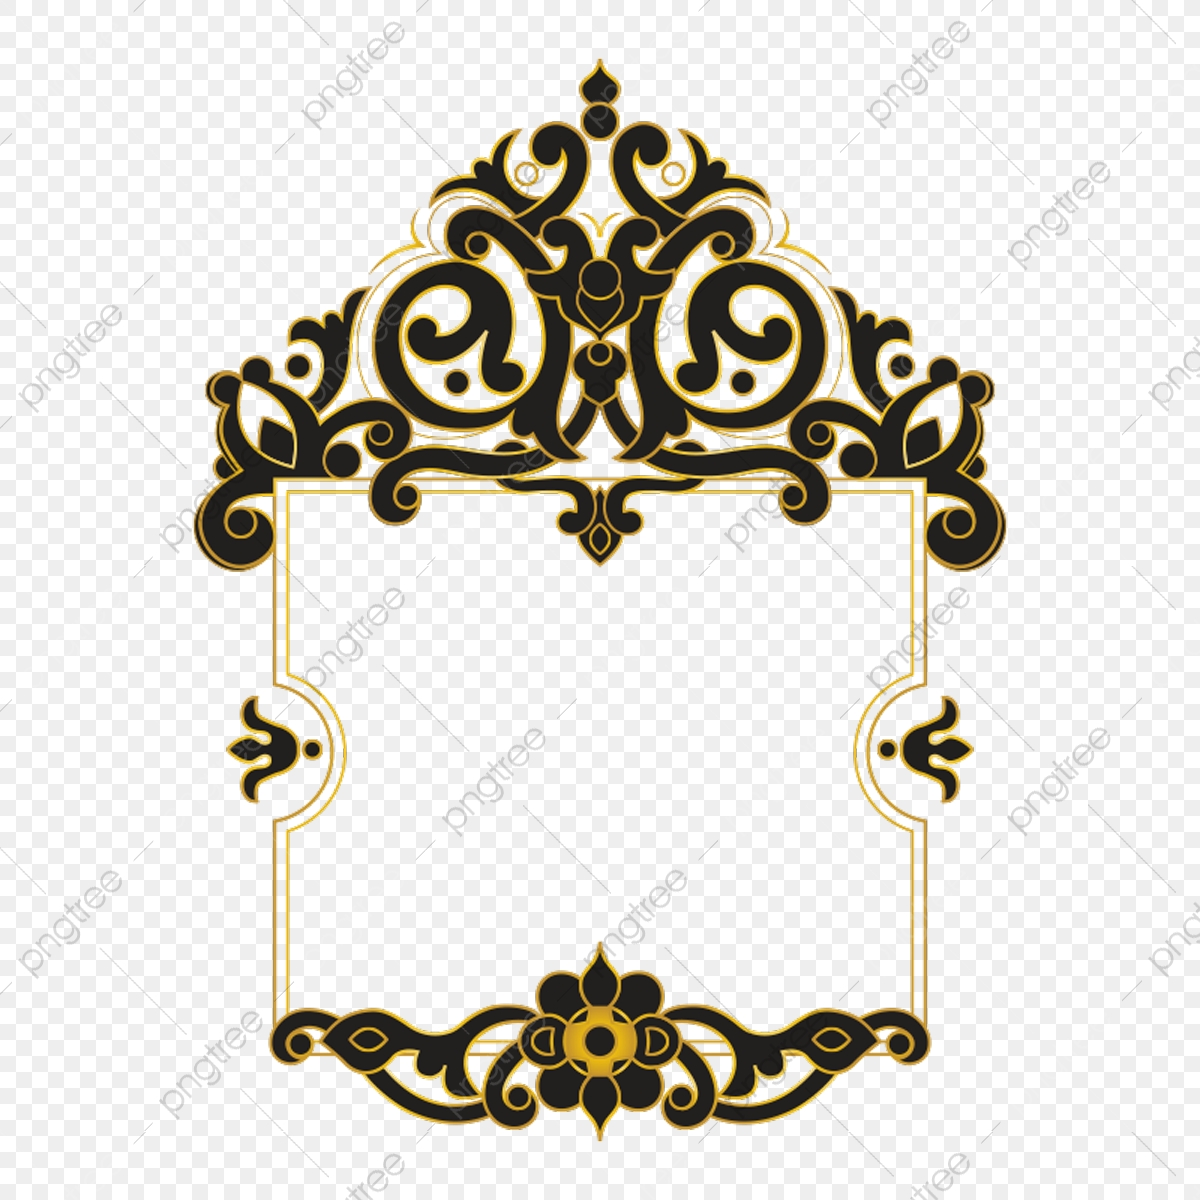 Ornament Border Png Images Vector And Psd Files Free Download On Pngtree